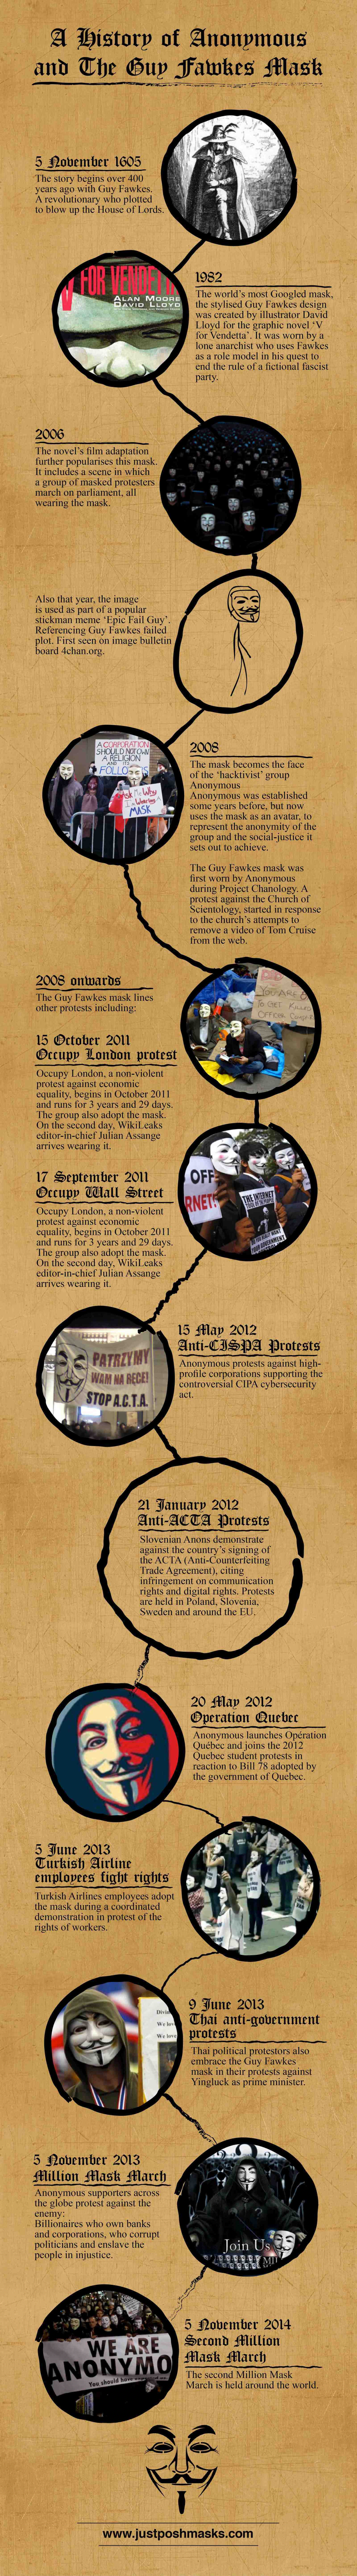 Infographic history of annoymous and guy fawkes